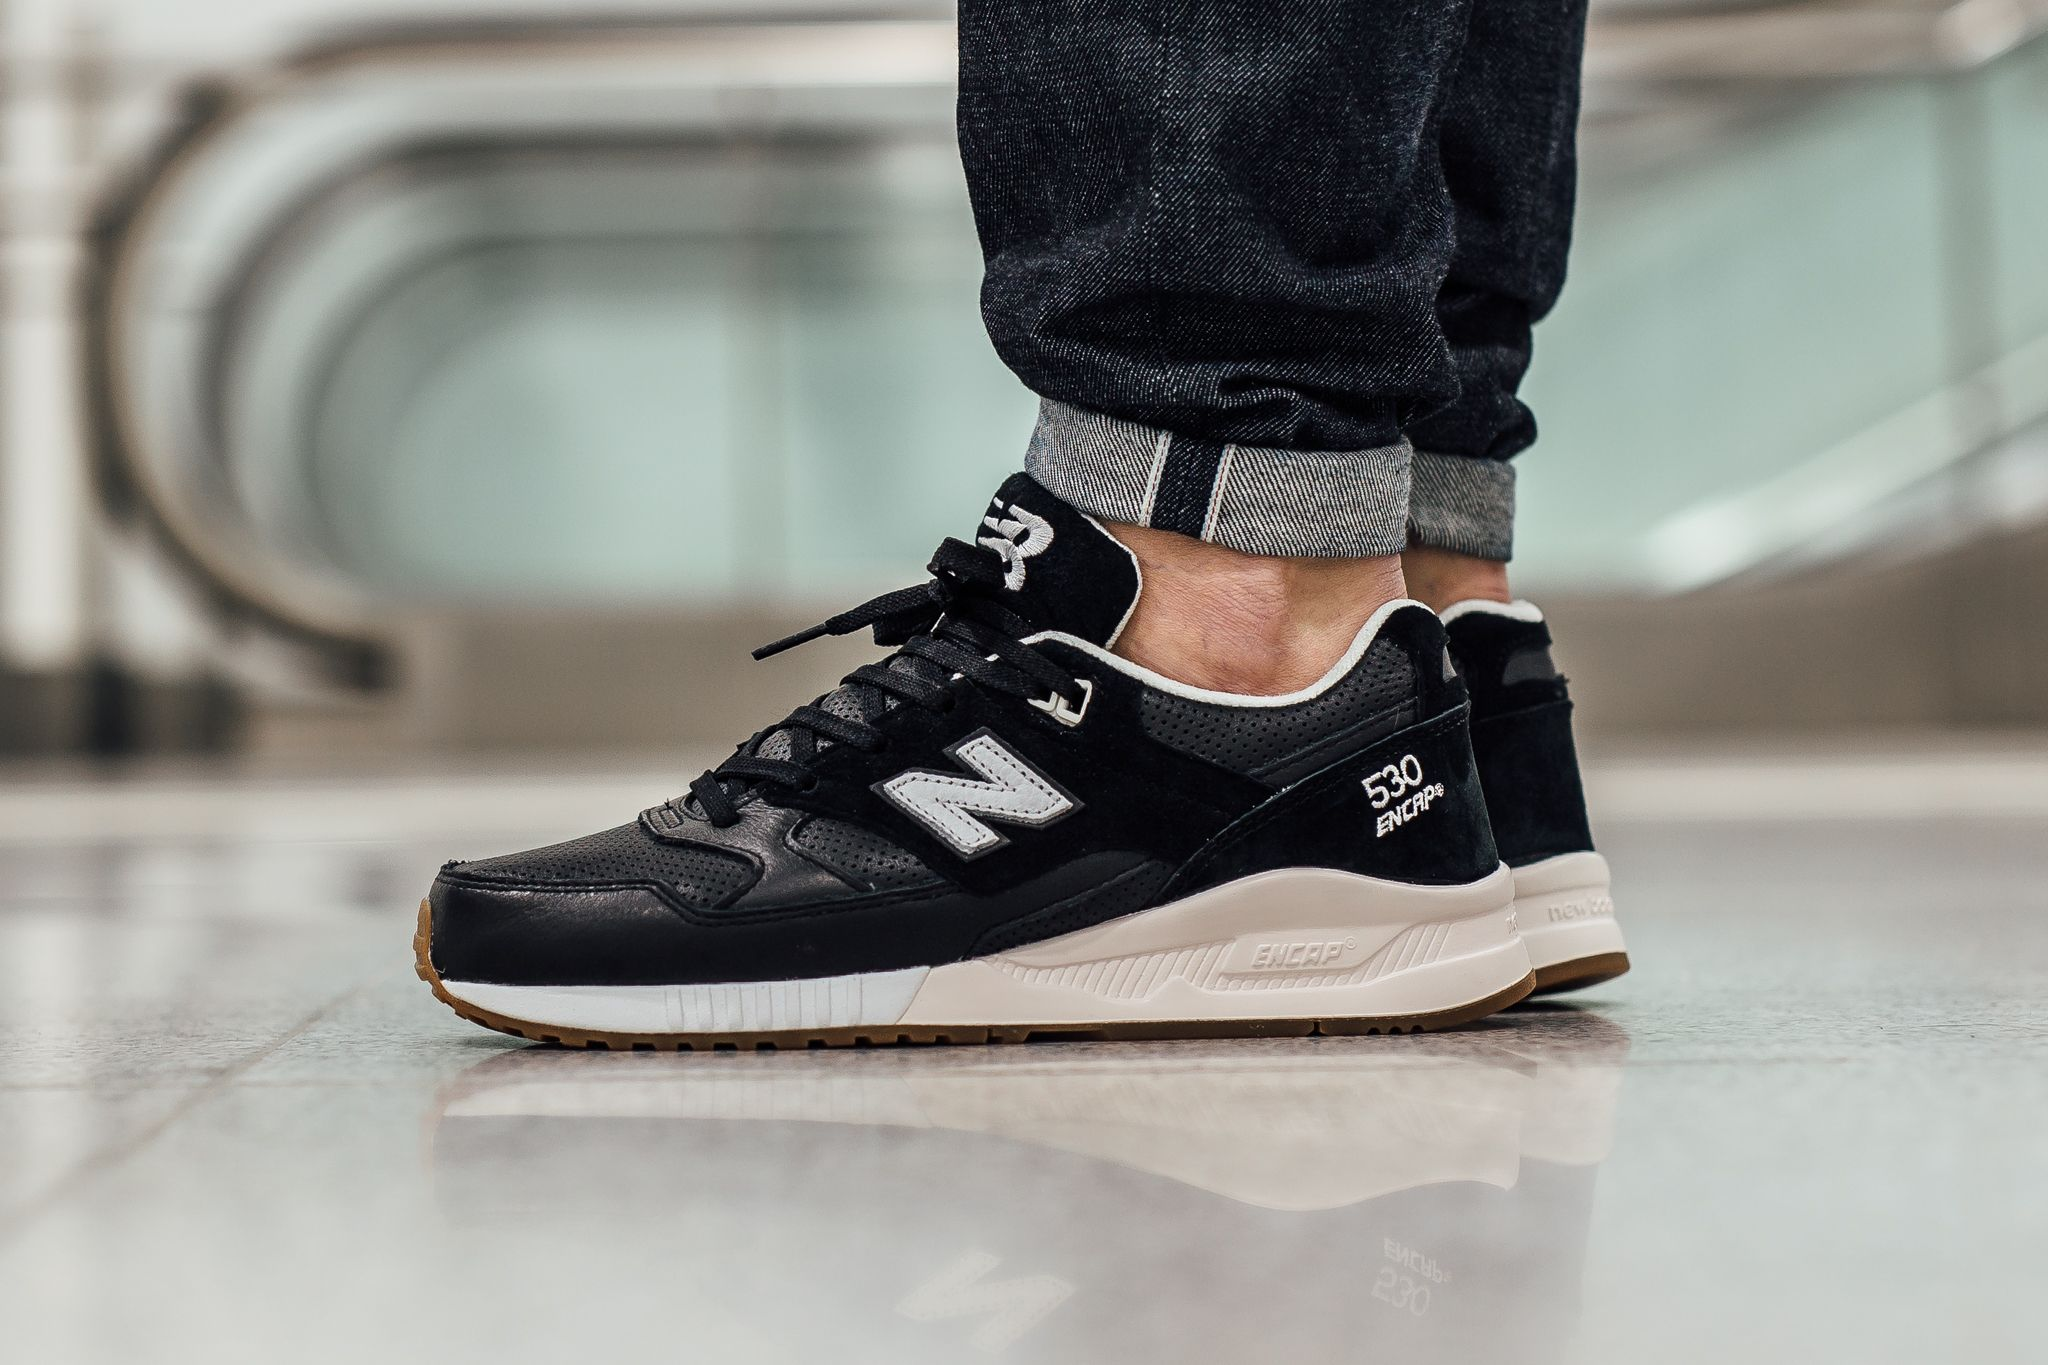 quality design d17a0 92acb New Balance M530ATB | Style | Sneakers, Sneakers fashion ...